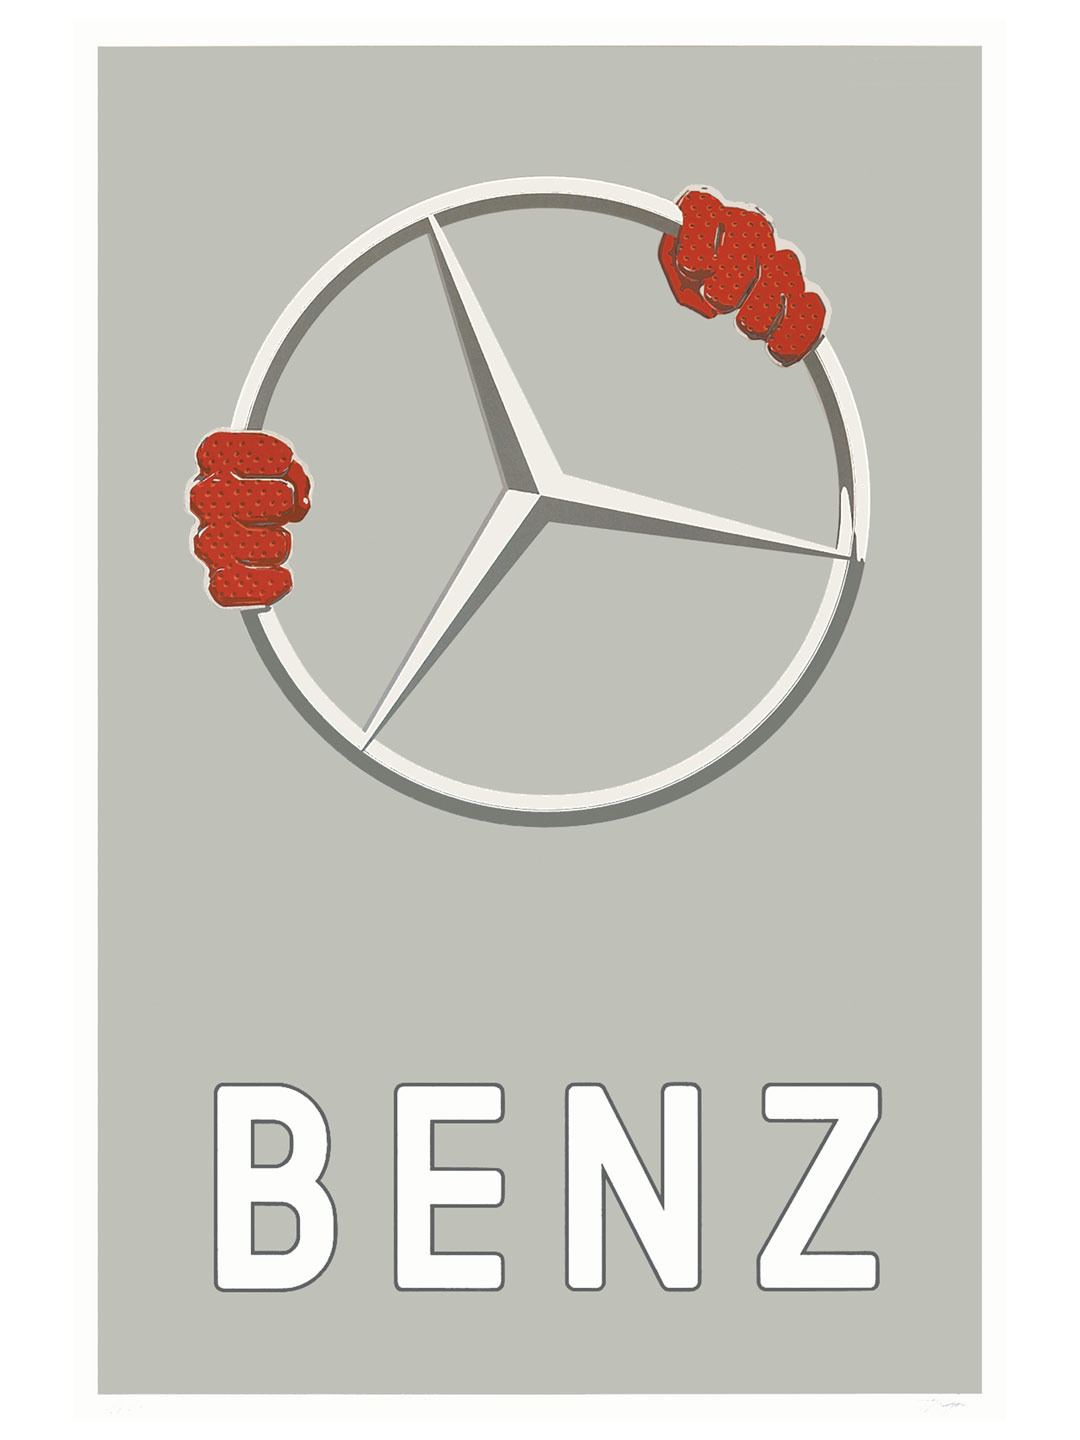 Benz :: By Tom Gianfagna (2)